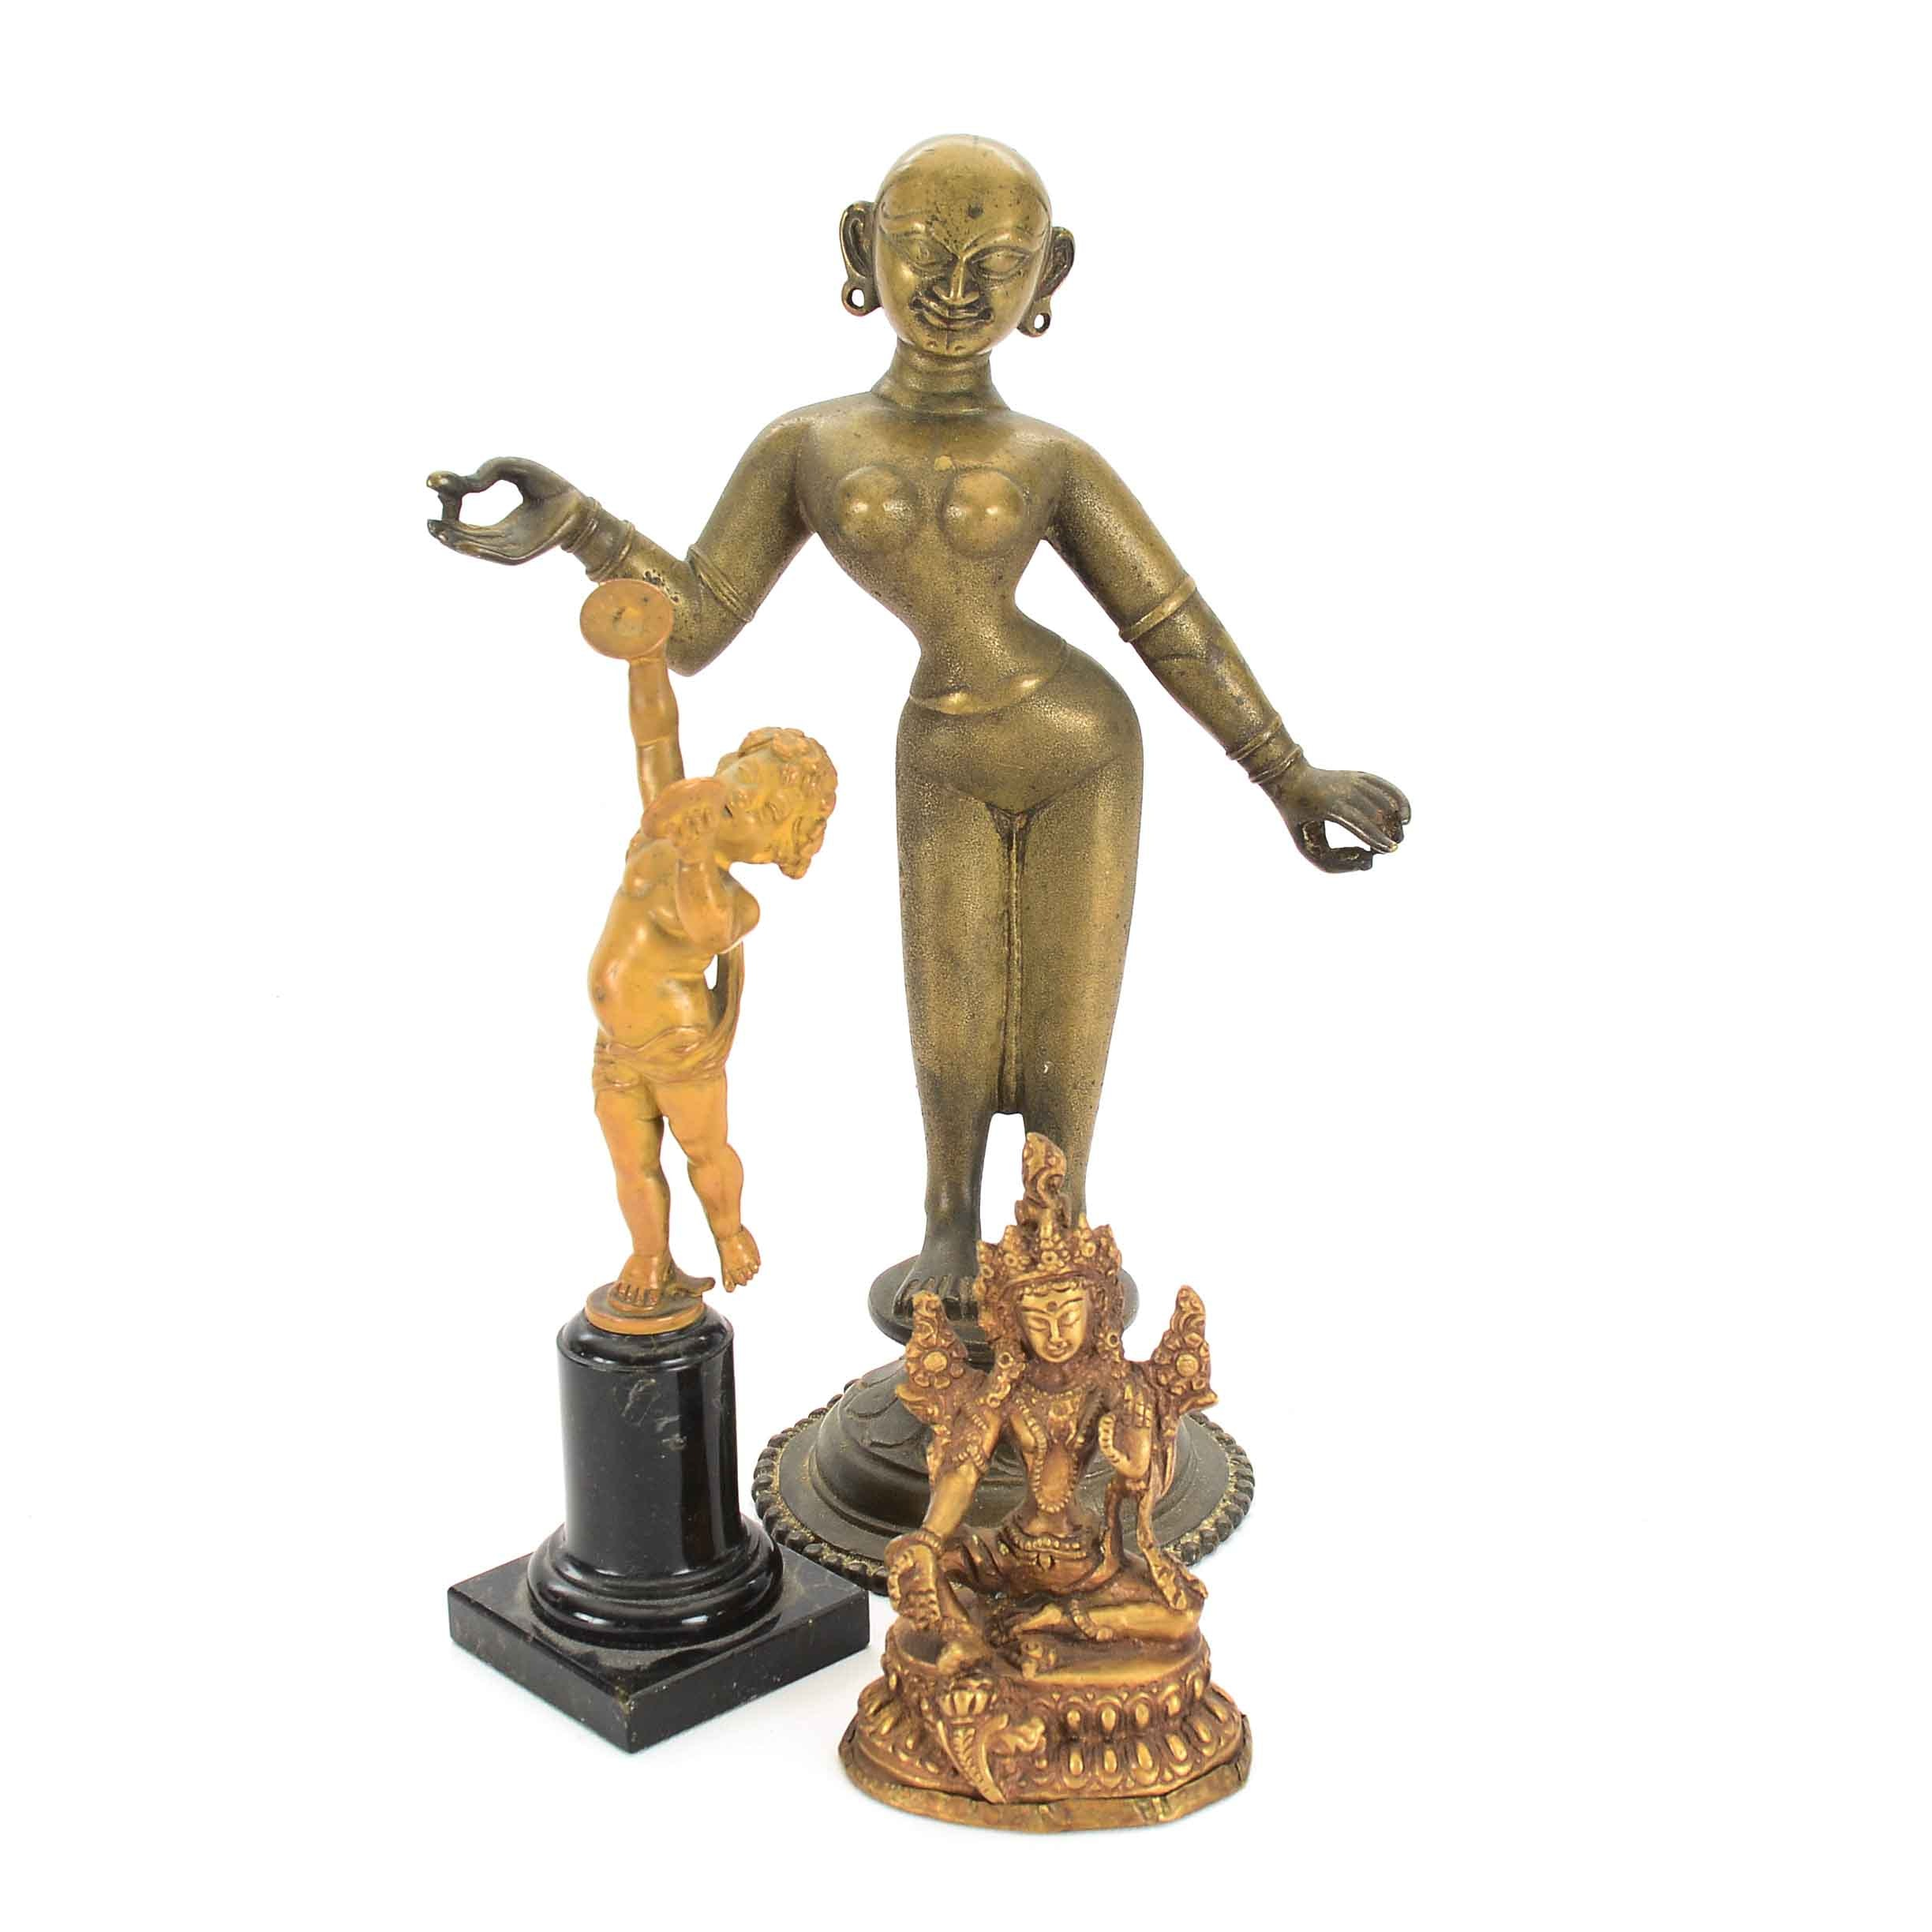 Assorted Gold Tone Decorative Figurines